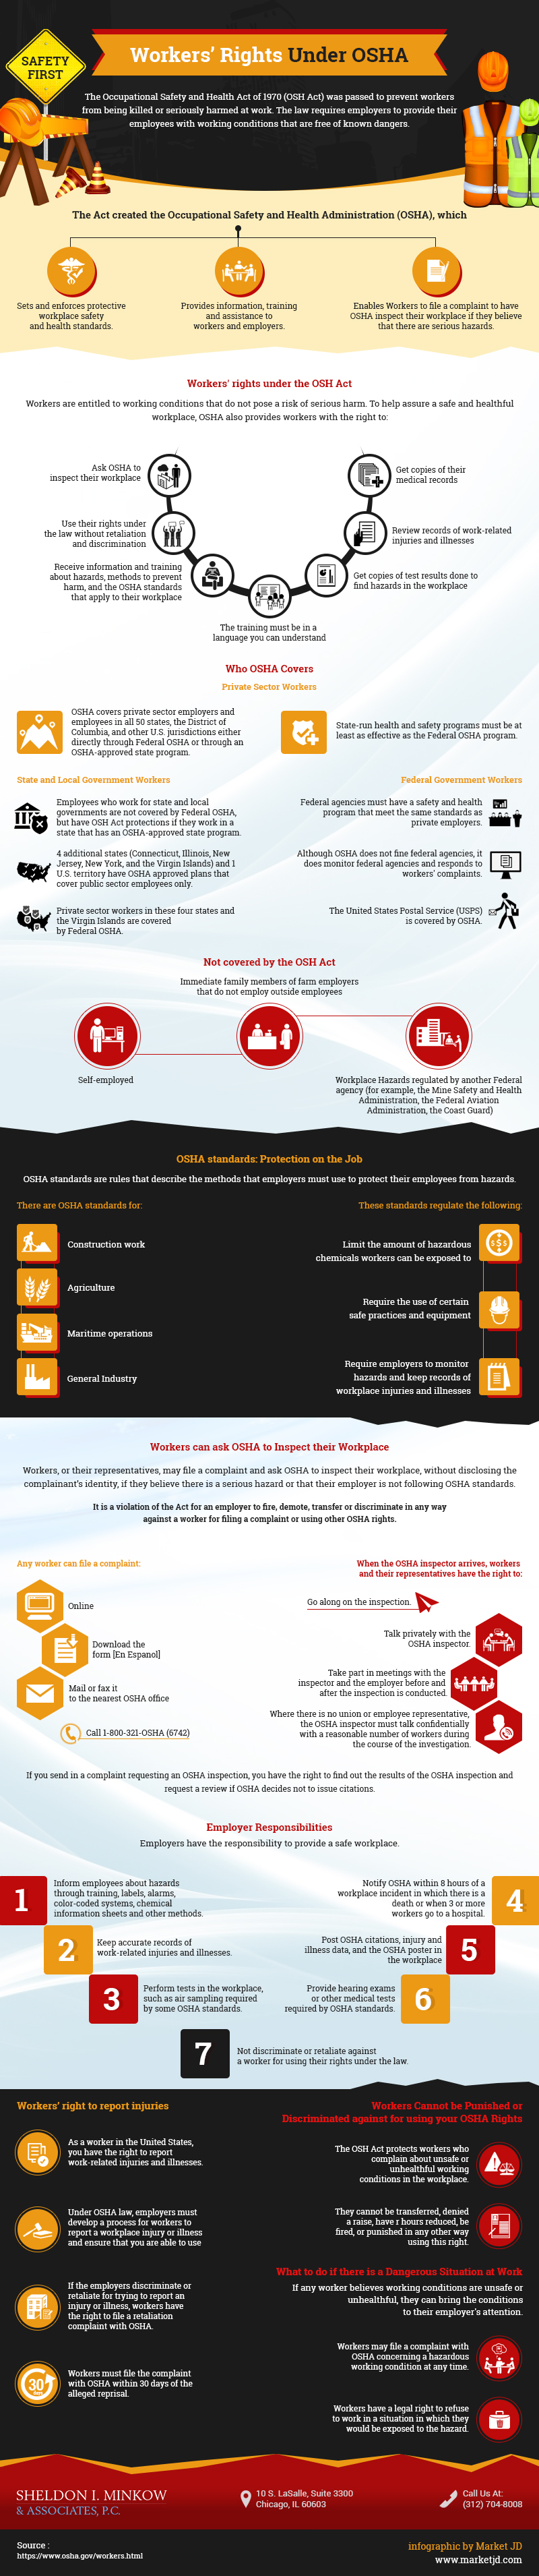 The Occupational Safety and Health Act of 1970 (OSH Act